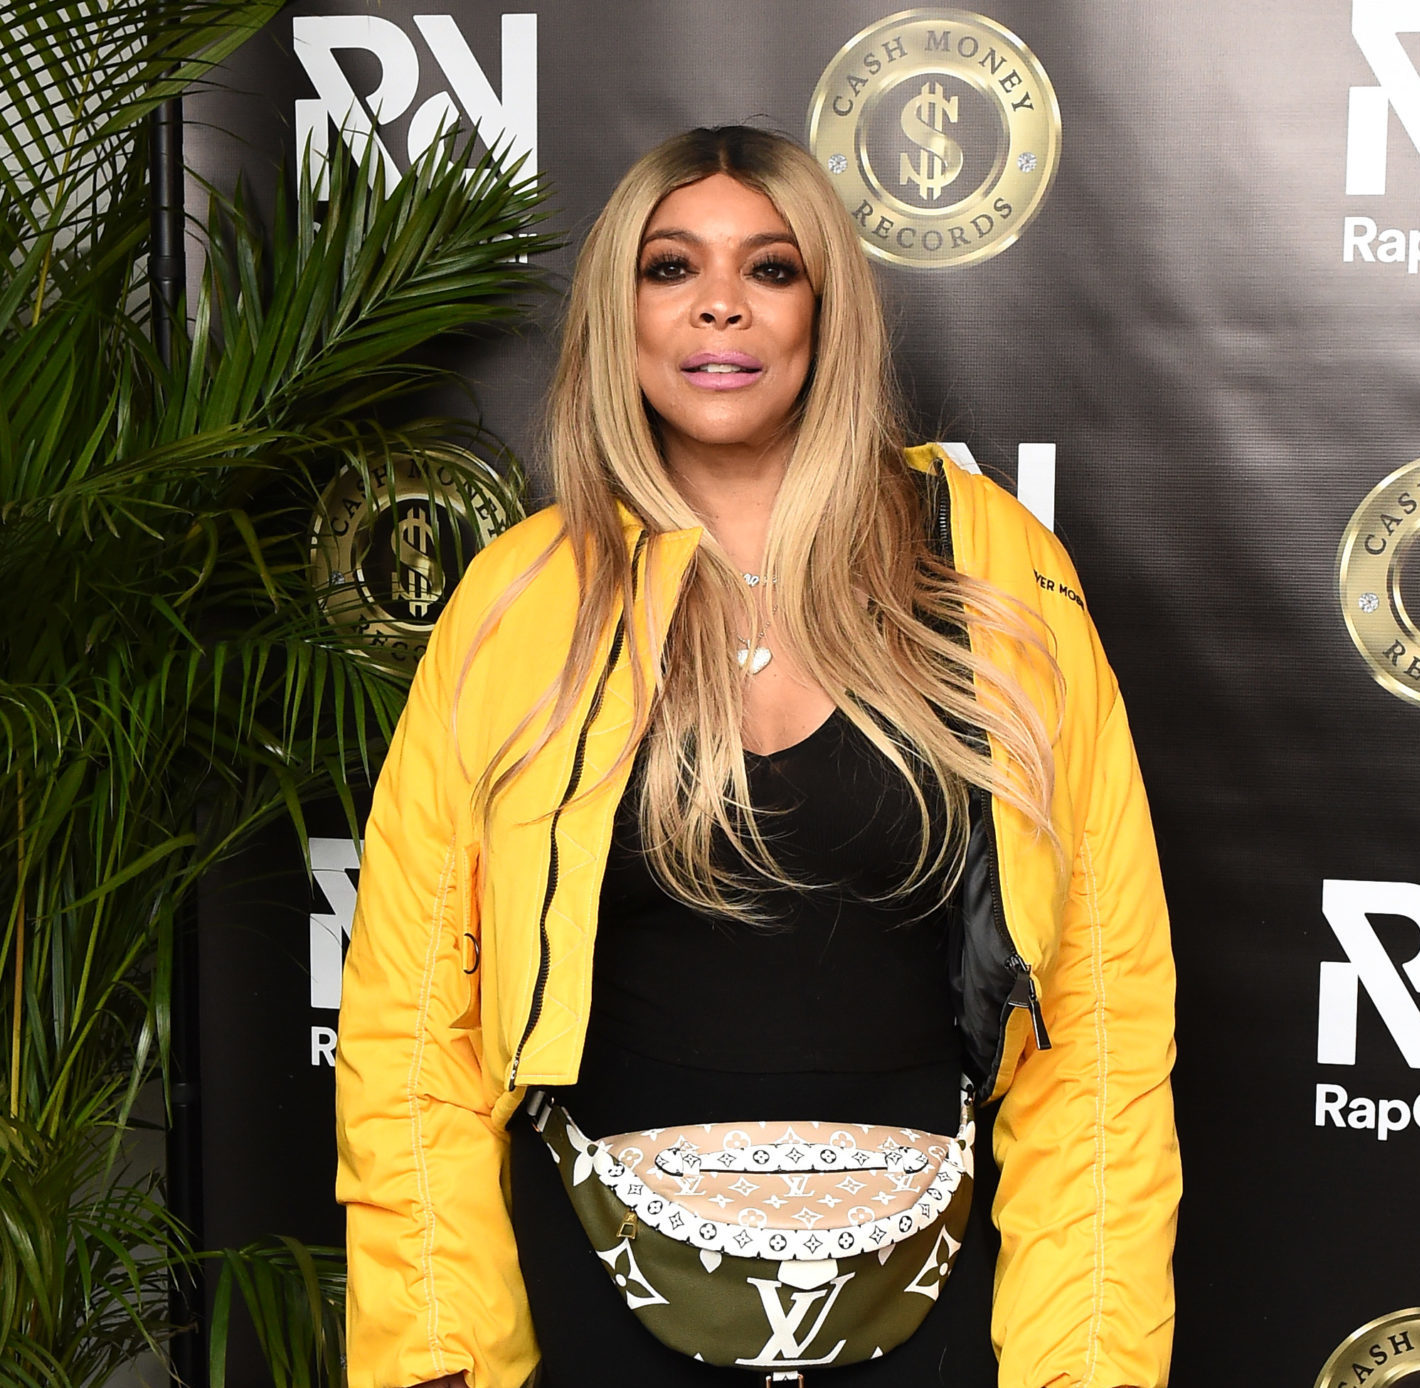 Wendy Williams' Show Set To Return Next Week With Guest Hosts